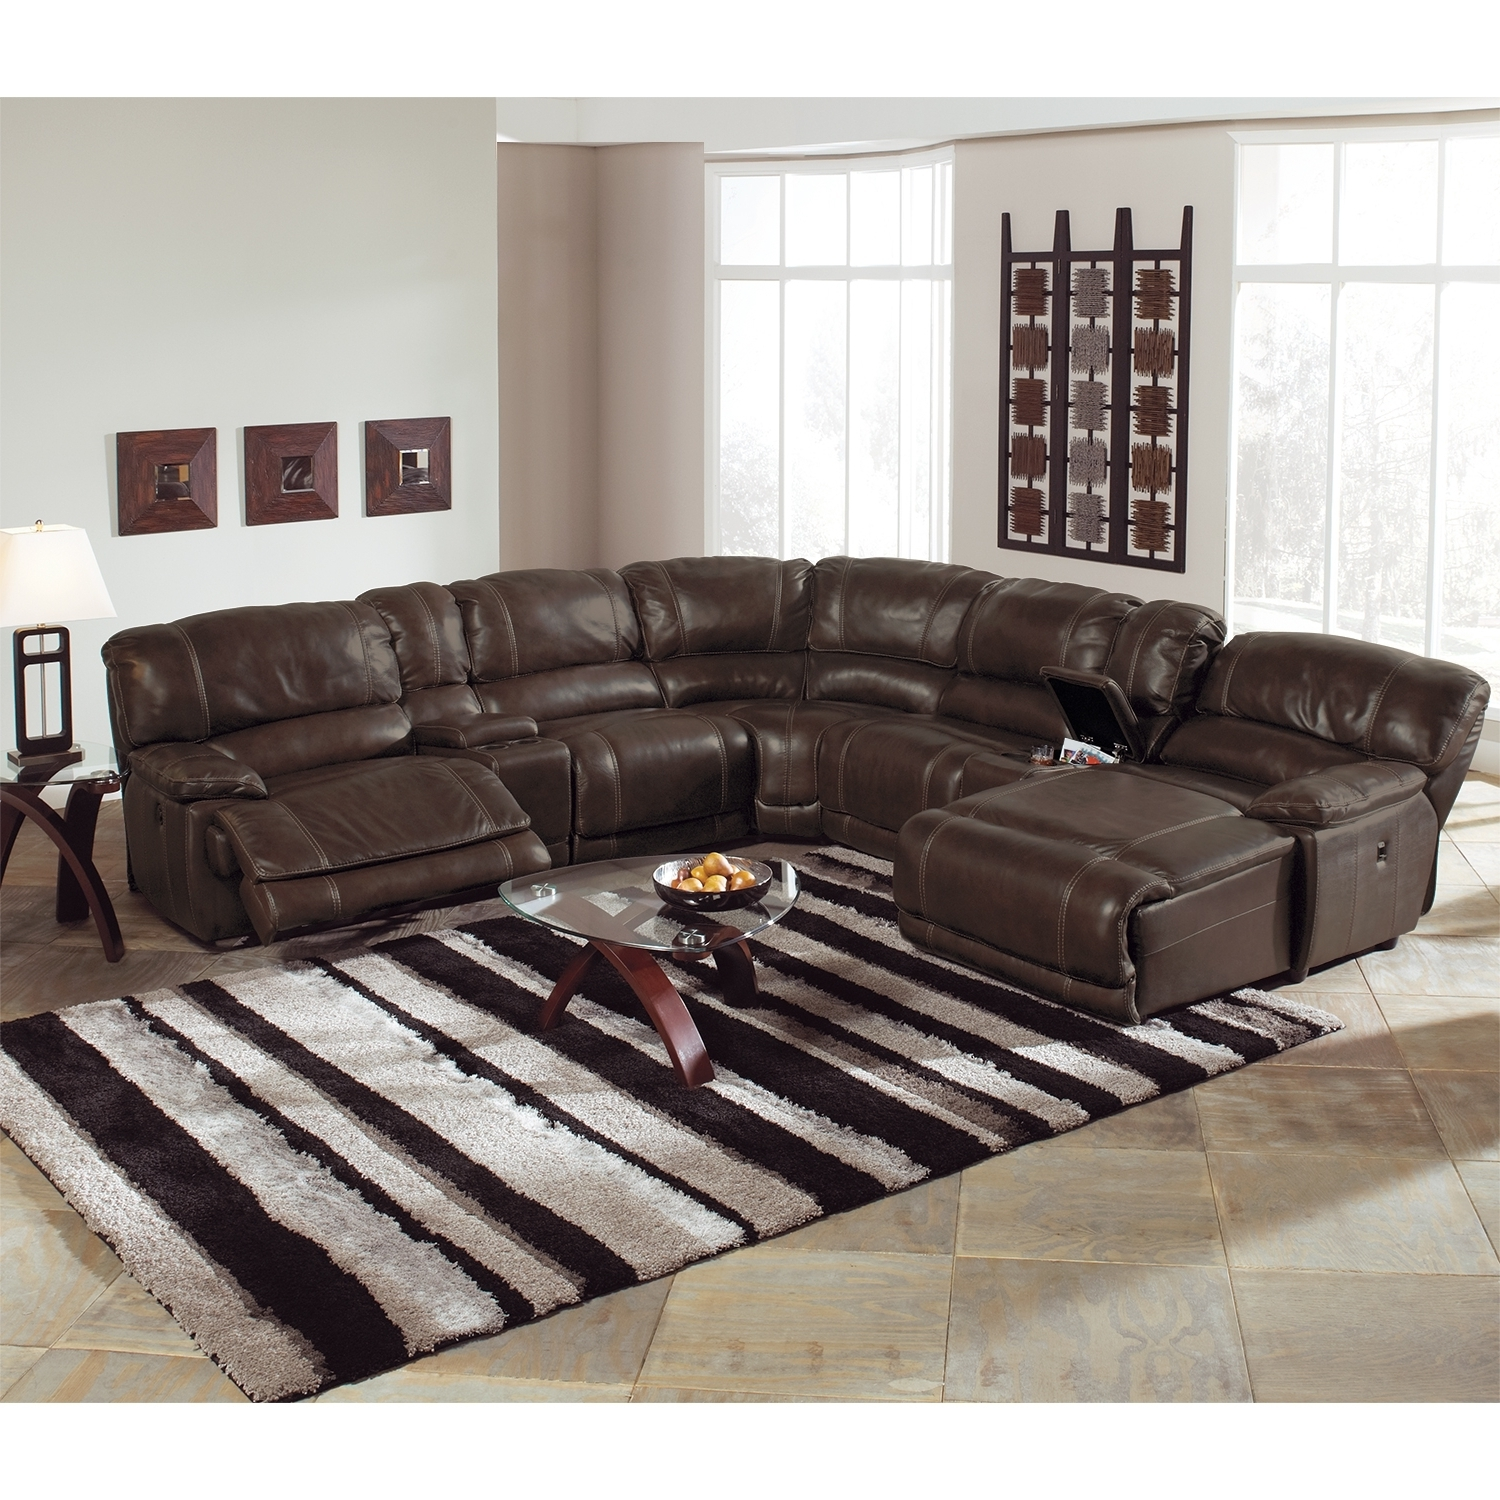 6 Piece Leather Sectional Sofas For Preferred St. Malo 6 Piece Power Reclining Sectional With Left Facing Chaise (Gallery 2 of 20)